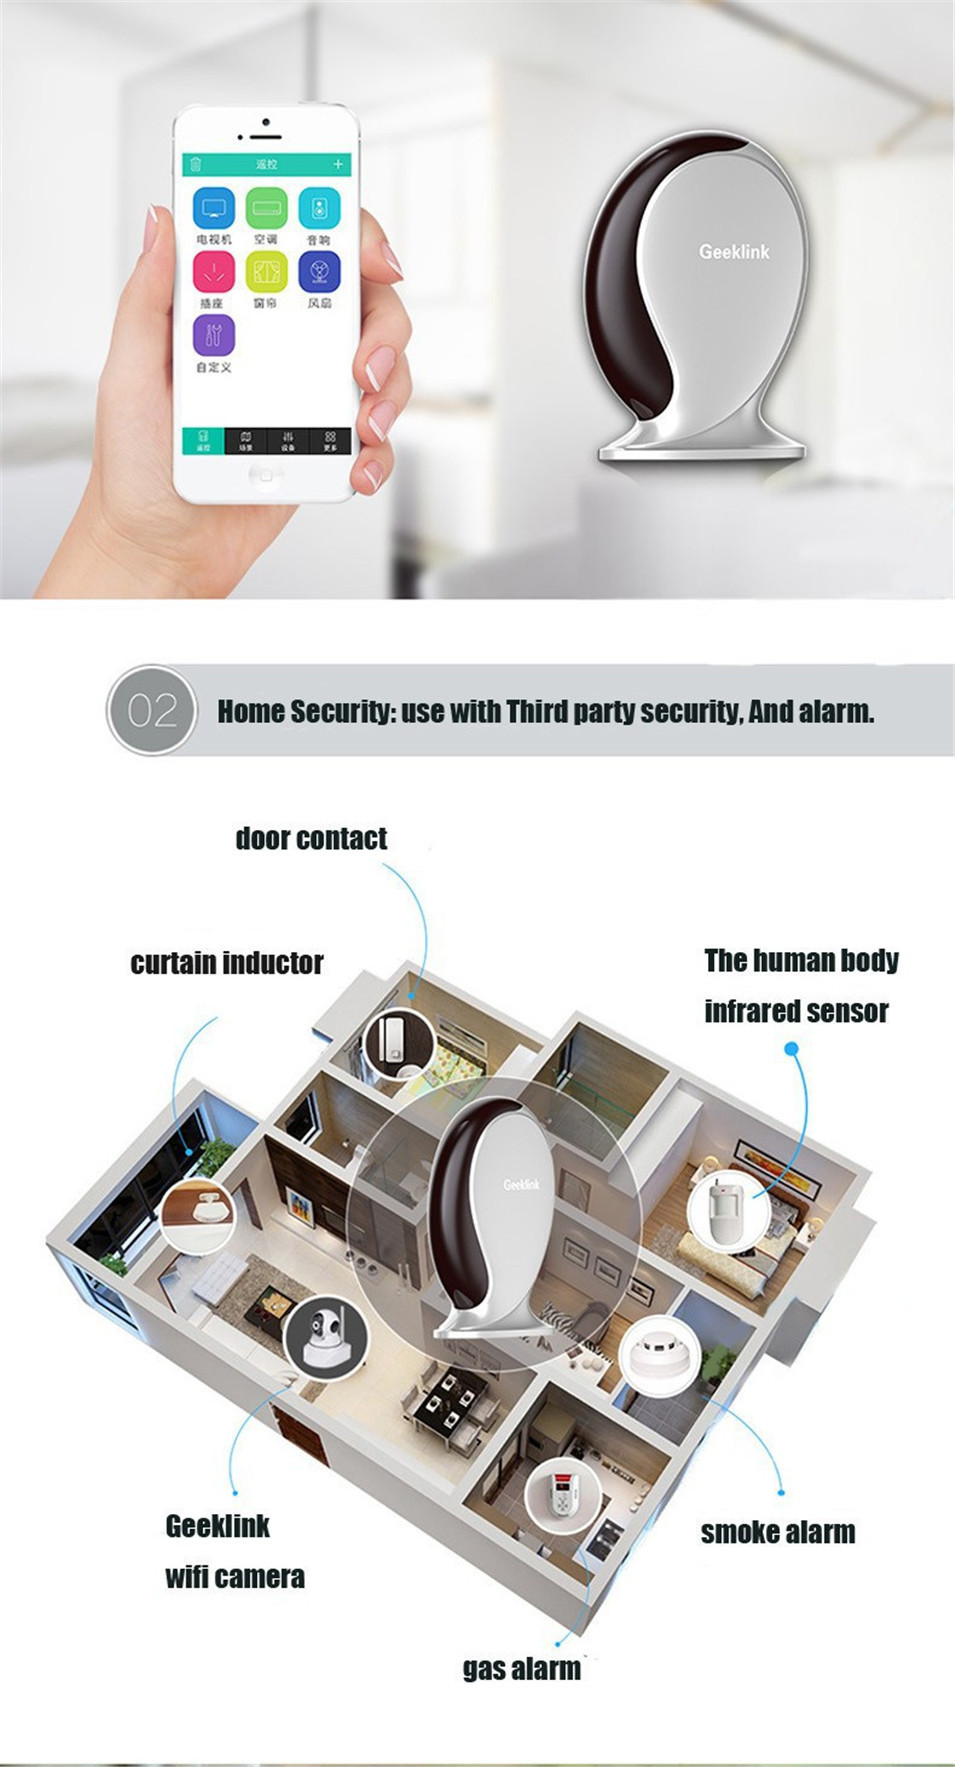 Geeklink Thinker Universal Intelligent Controller,Router+WIFI+IR+RF Switch Remote Control by IOS Android Smart Home Automation